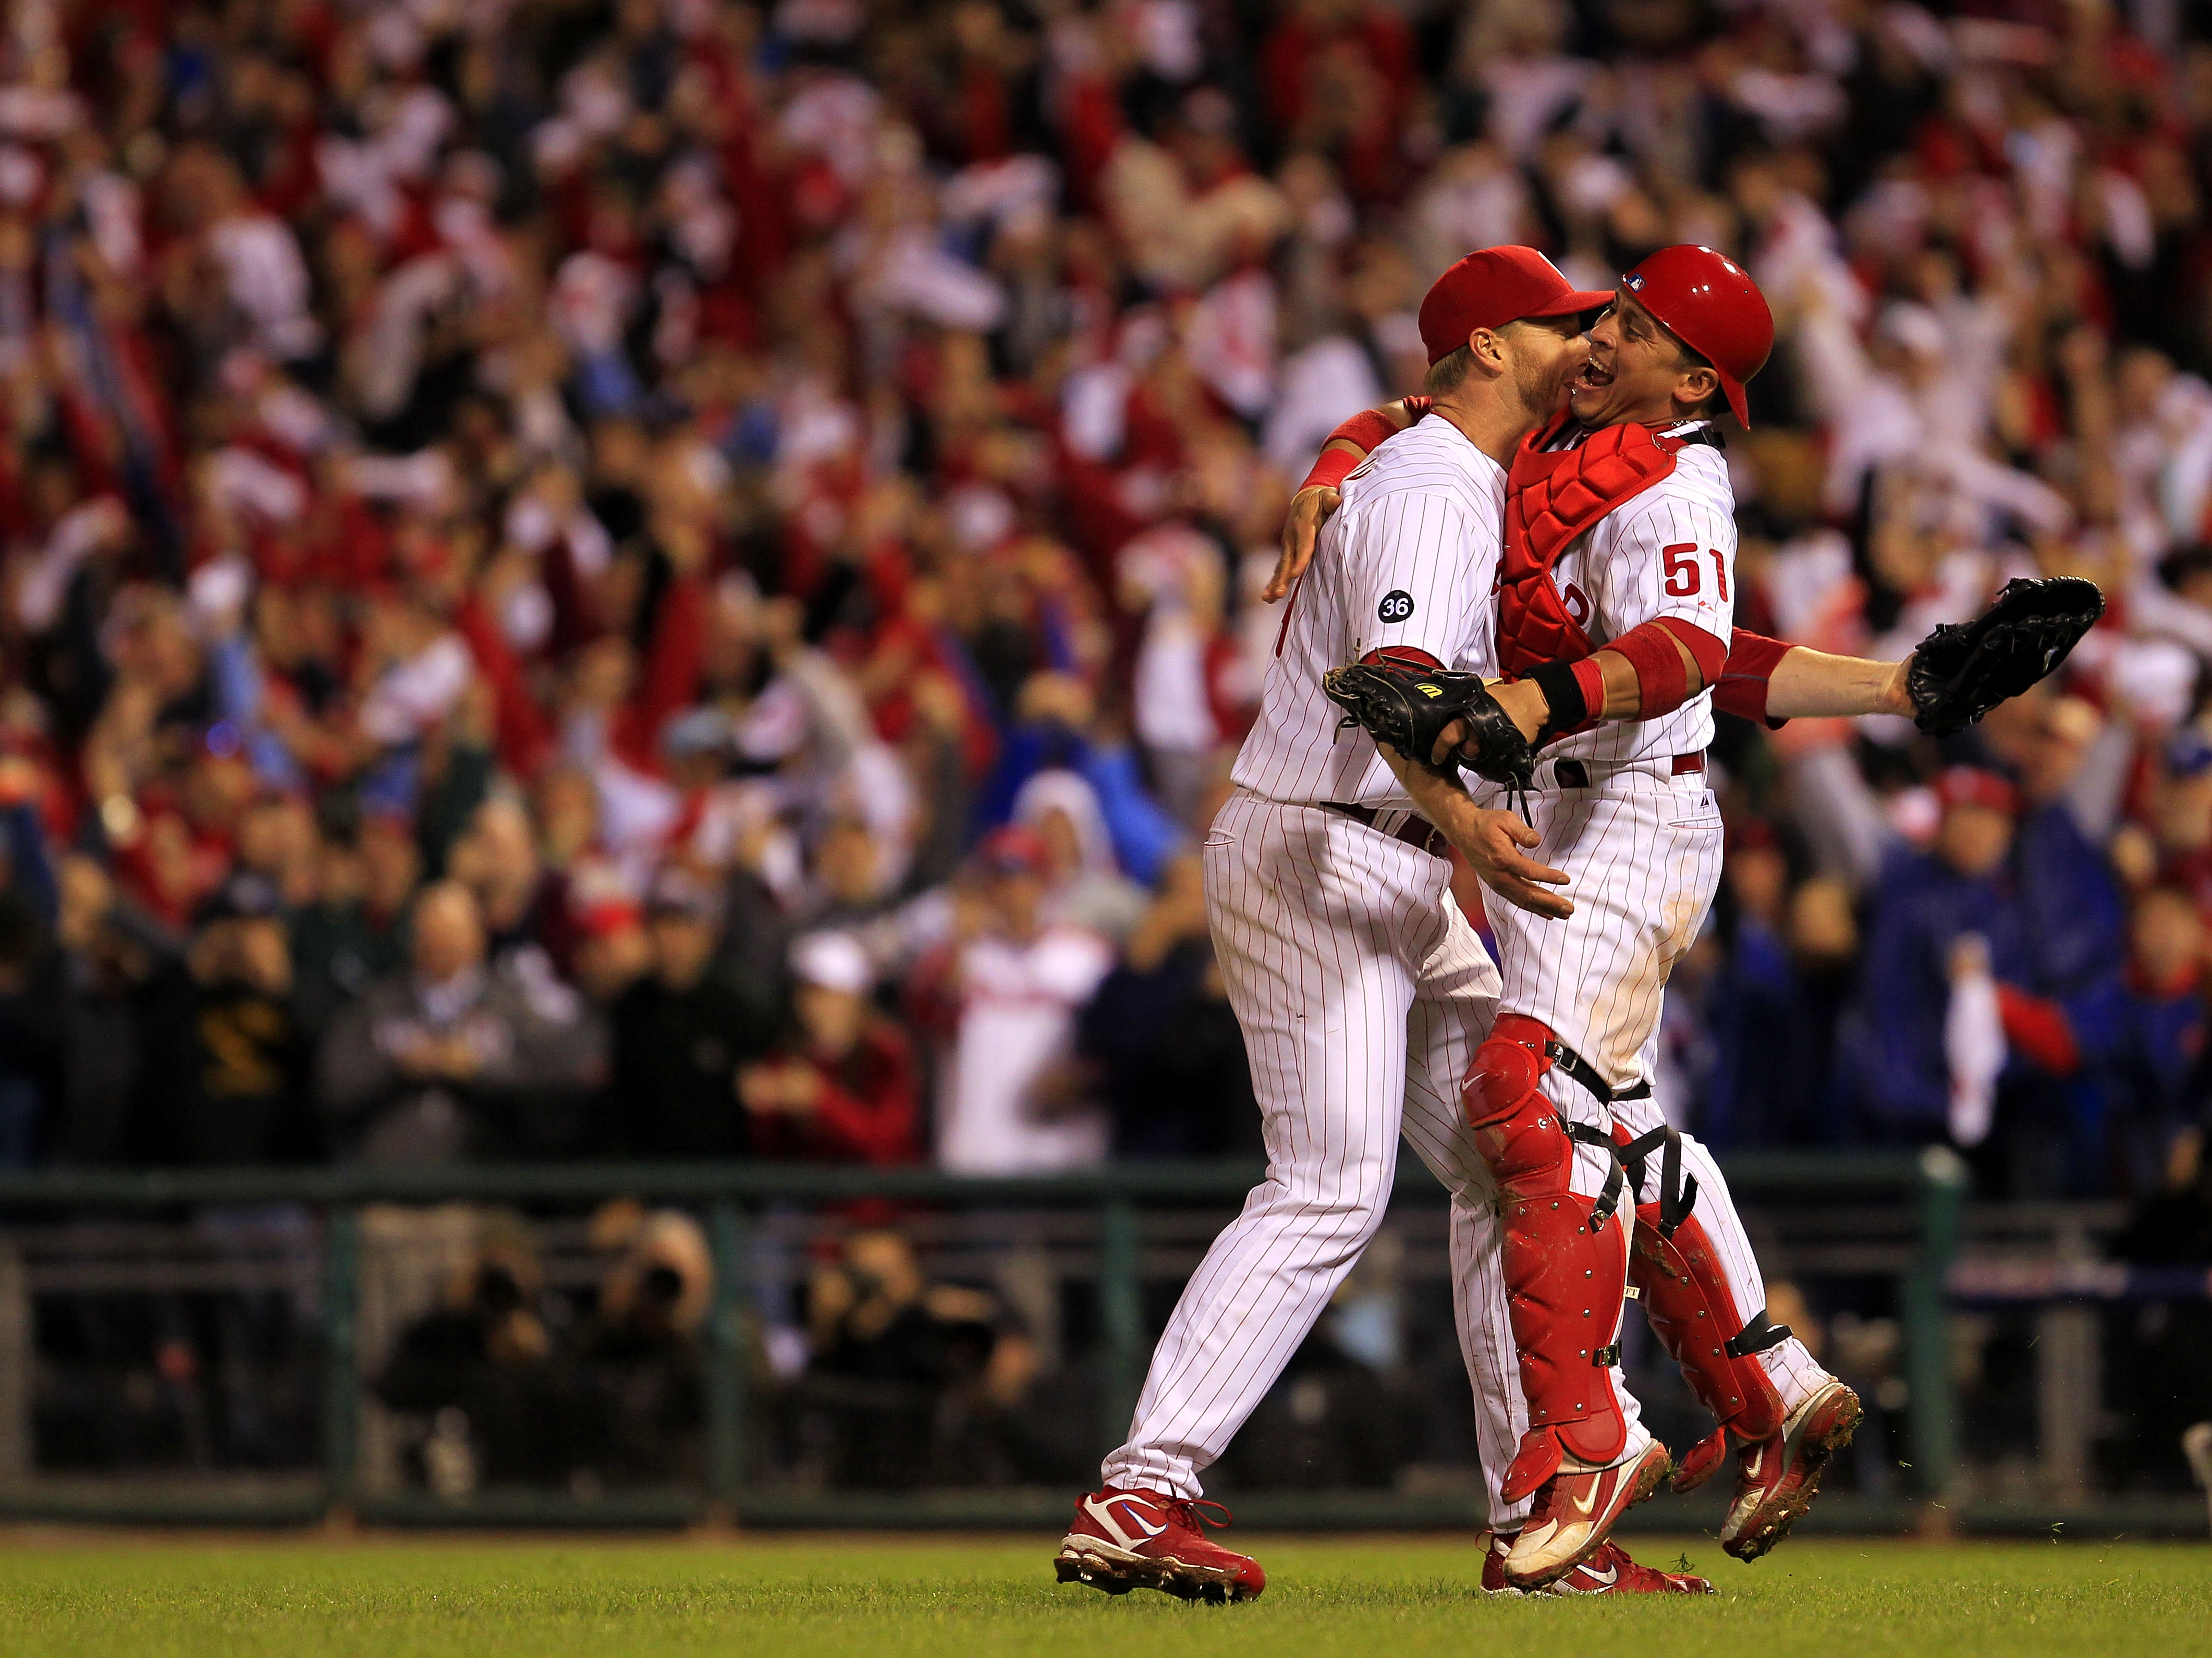 PHILADELPHIA - OCTOBER 06:  Roy Halladay #34 and Carlos Ruiz #51 of the Philadelphia Phillies celebrate Halladay's no-hitter and the win in Game 1 of the NLDS against the Cincinnati Reds at Citizens Bank Park on October 6, 2010 in Philadelphia, Pennsylvan